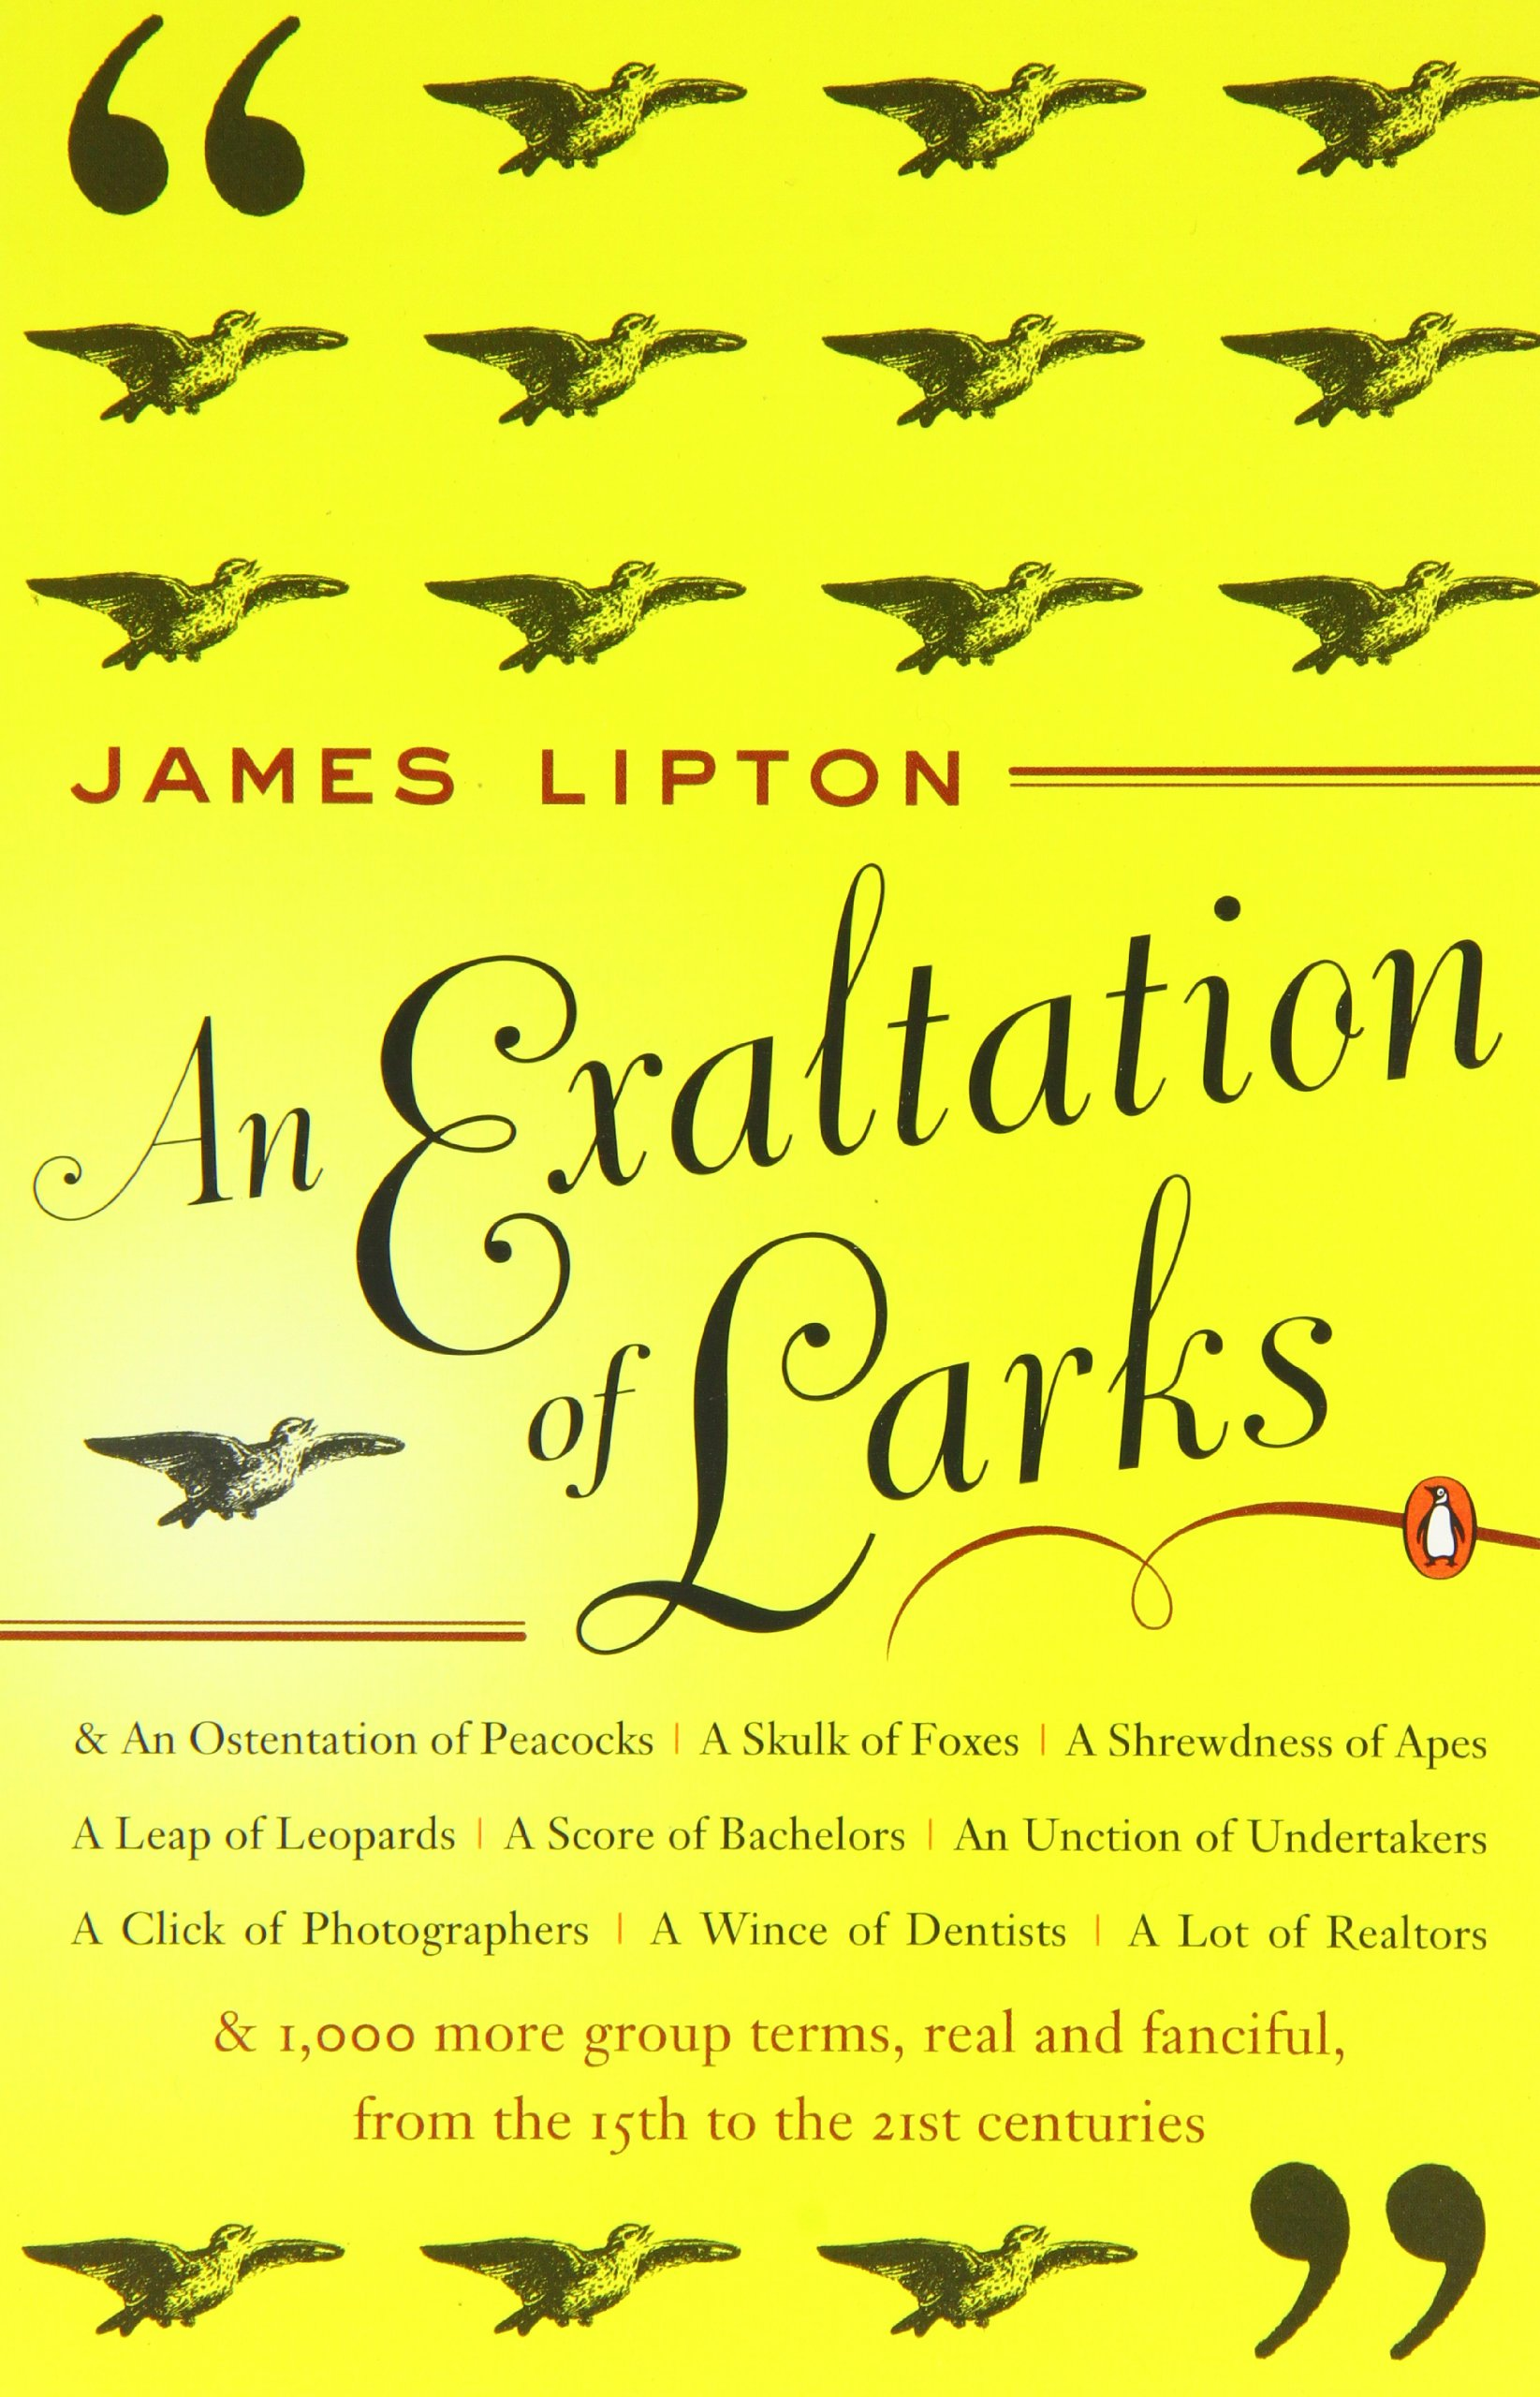 Exaltation of Larks.jpg